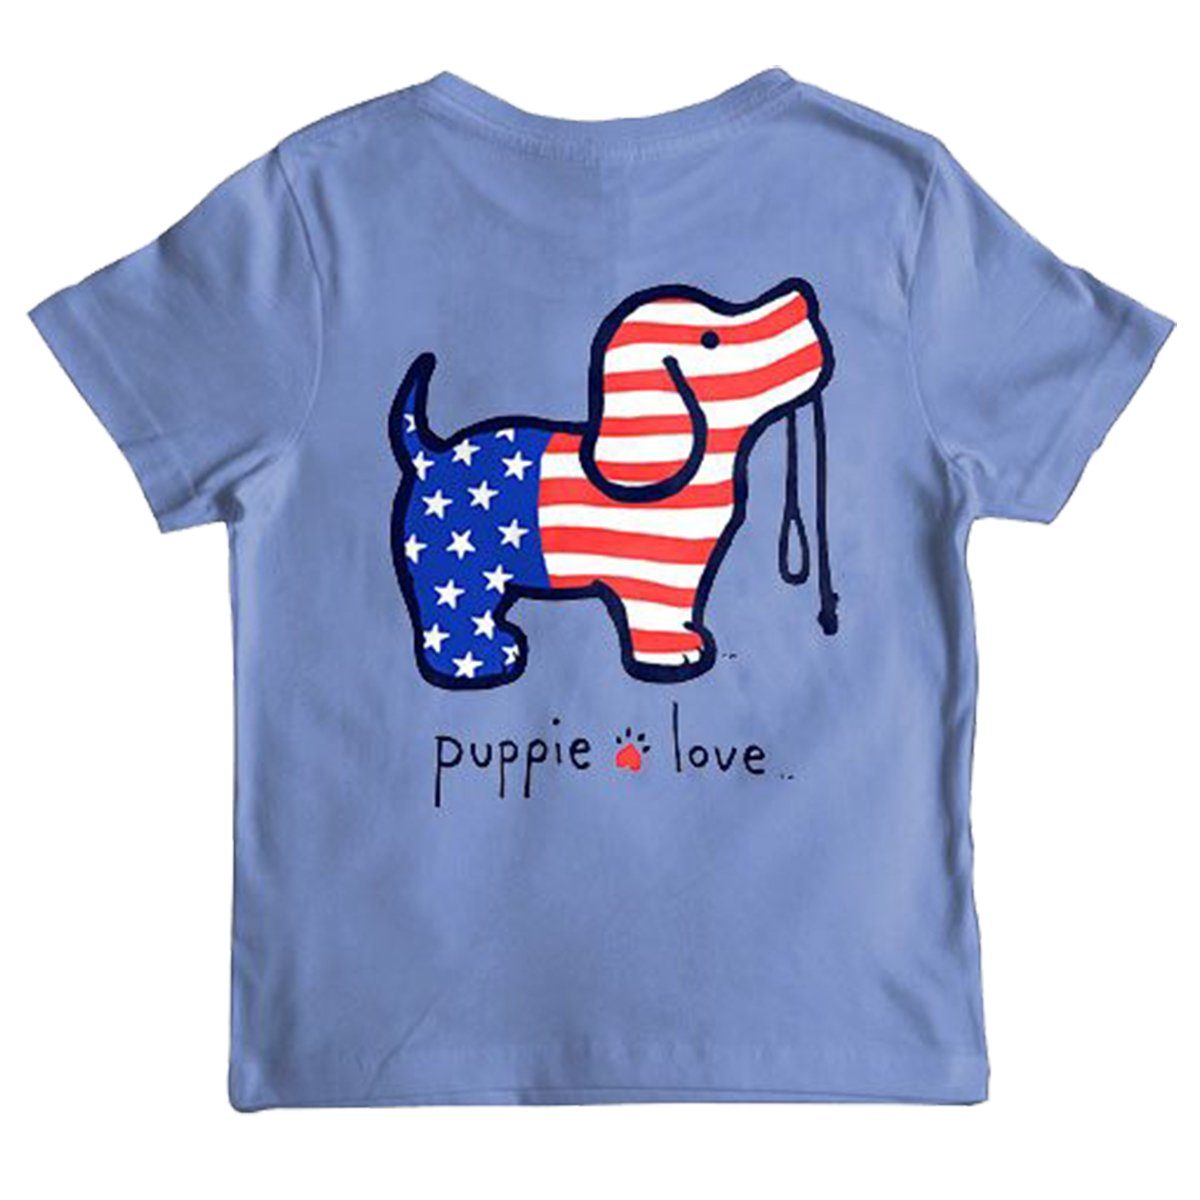 Puppie Love Youth USA Pup Help Rescue Dogs T-Shirt-Youth Large